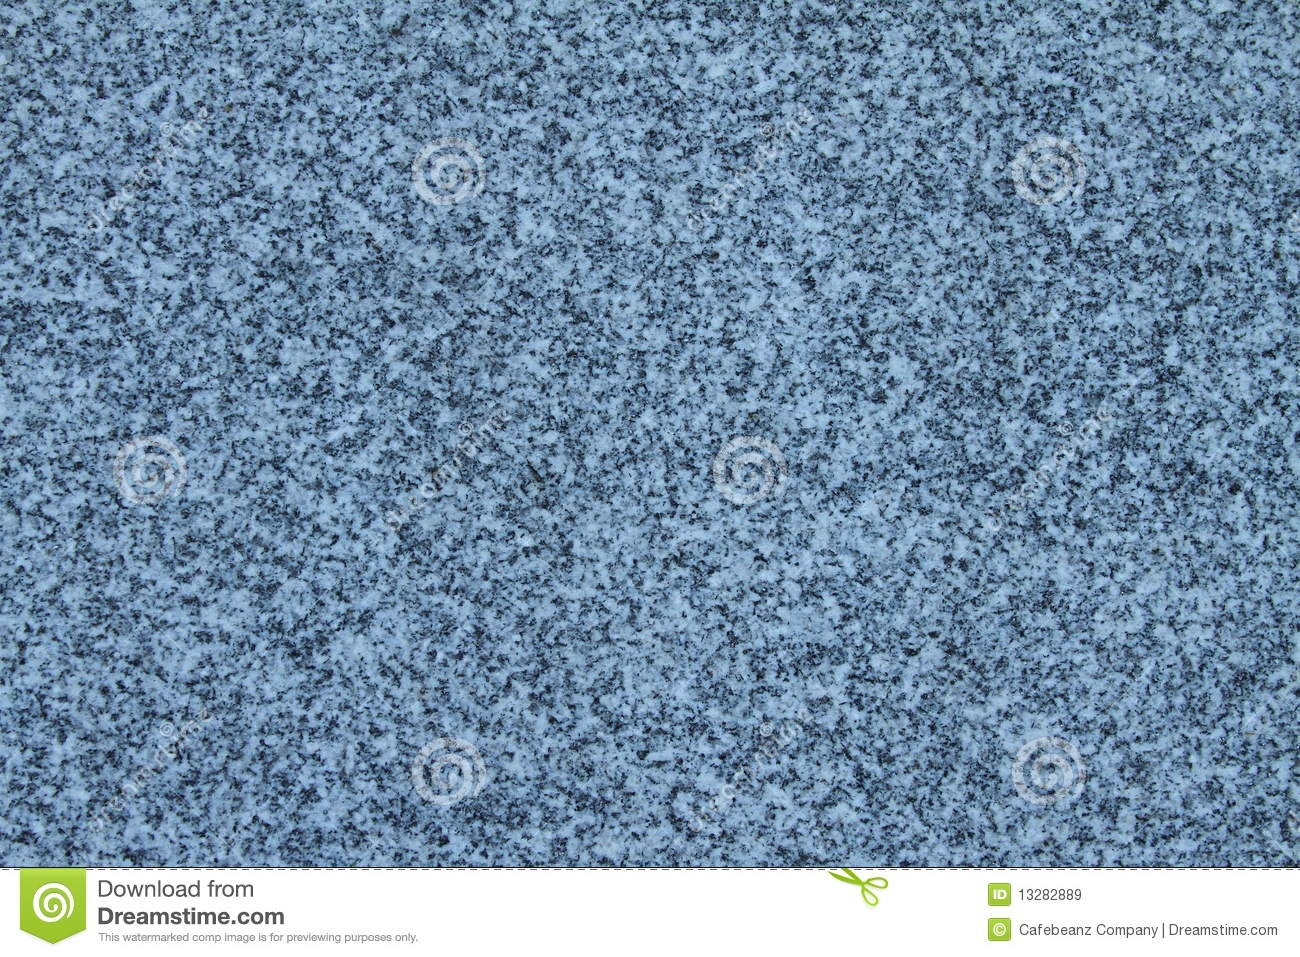 Granite Surface : Granite Surface Texture Royalty Free Stock Images - Image: 13282889